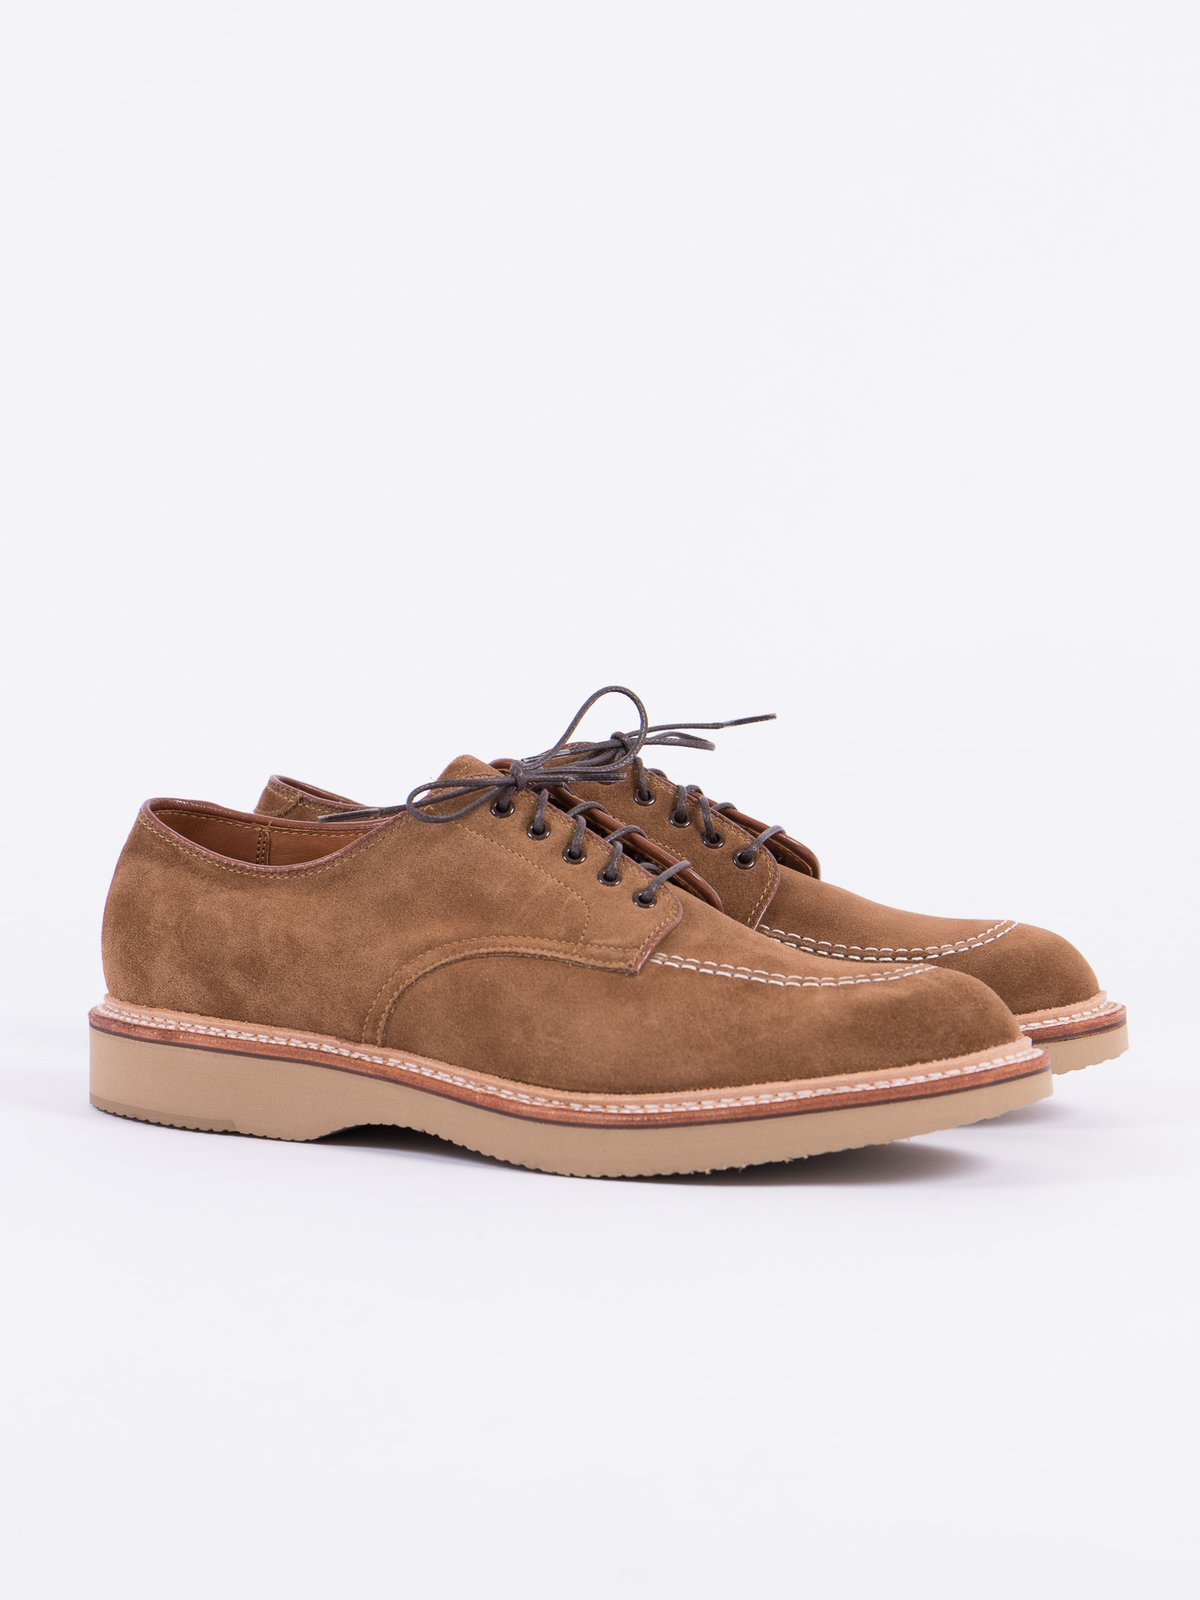 Snuff Suede Indy Work Shoe - Image 1